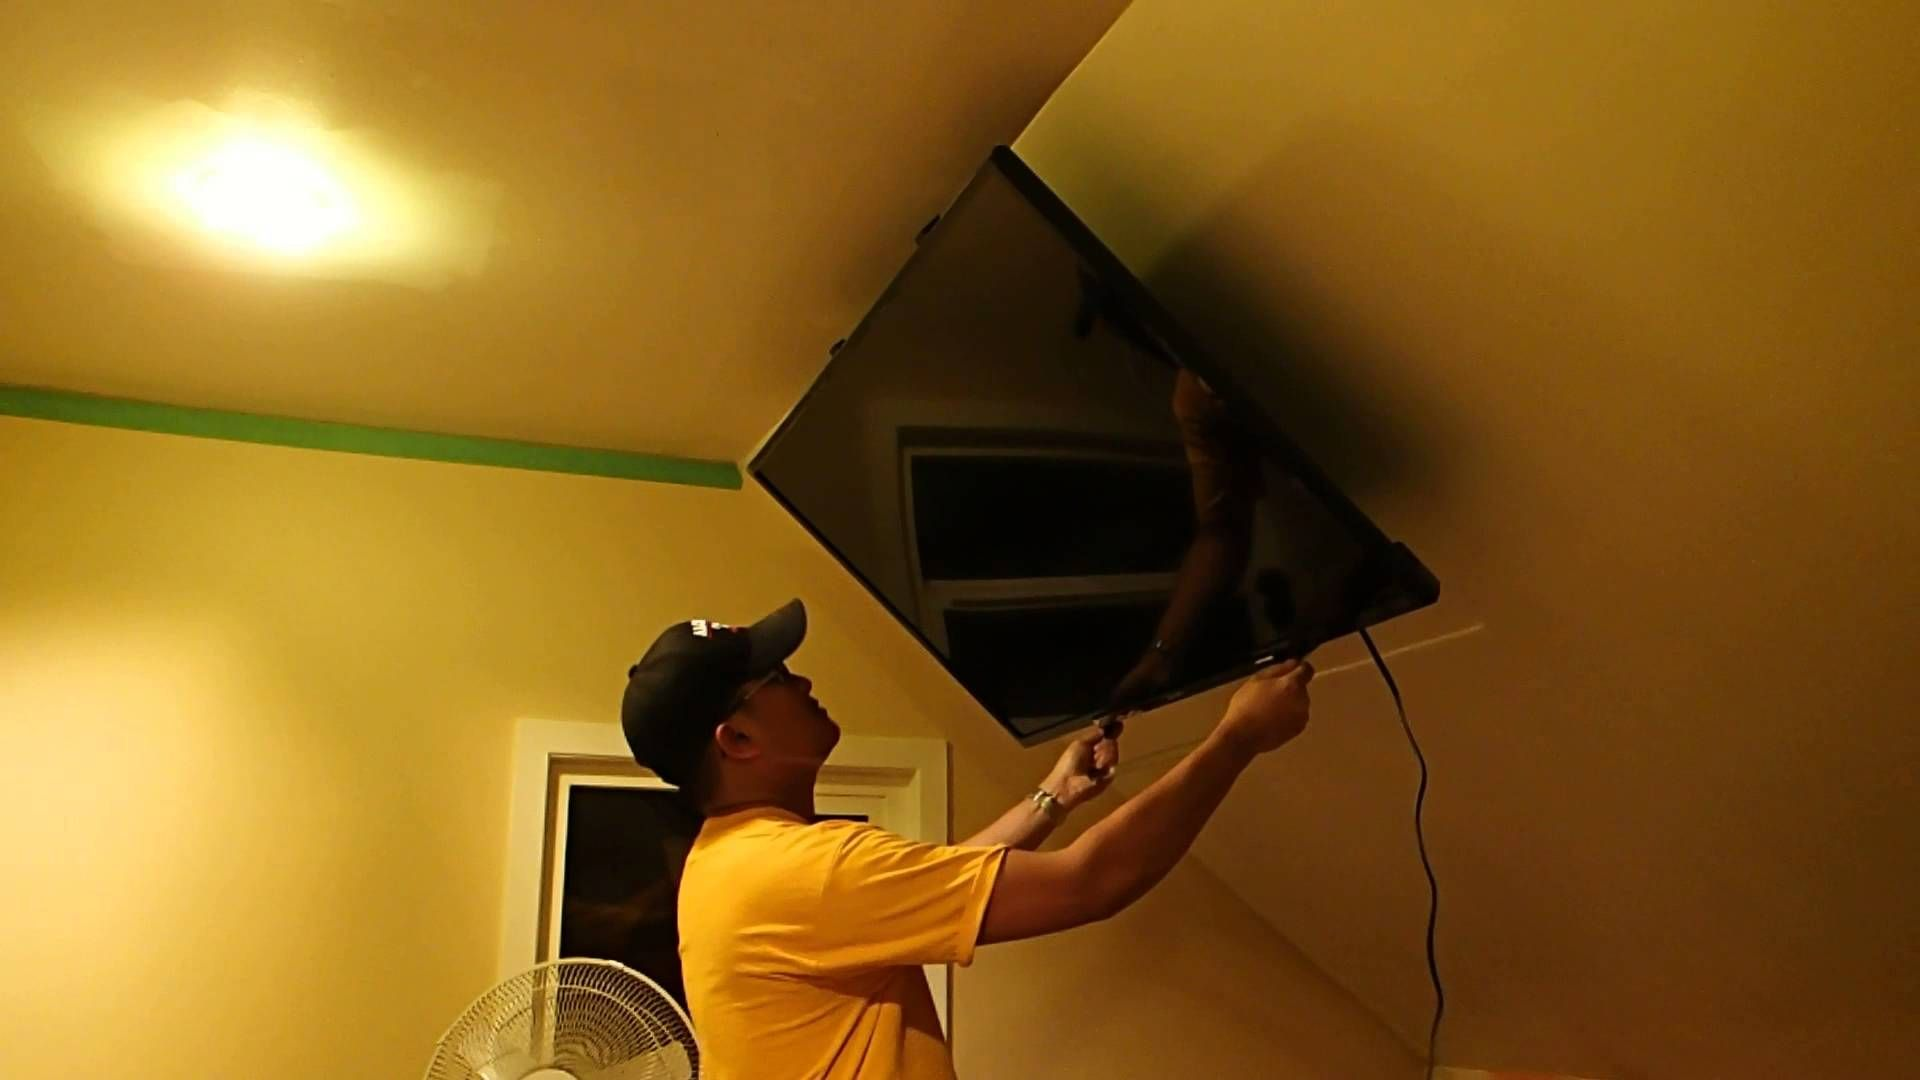 Retractable Angled Ceiling TV Mount | House Ideas in 2019 | Attic ...